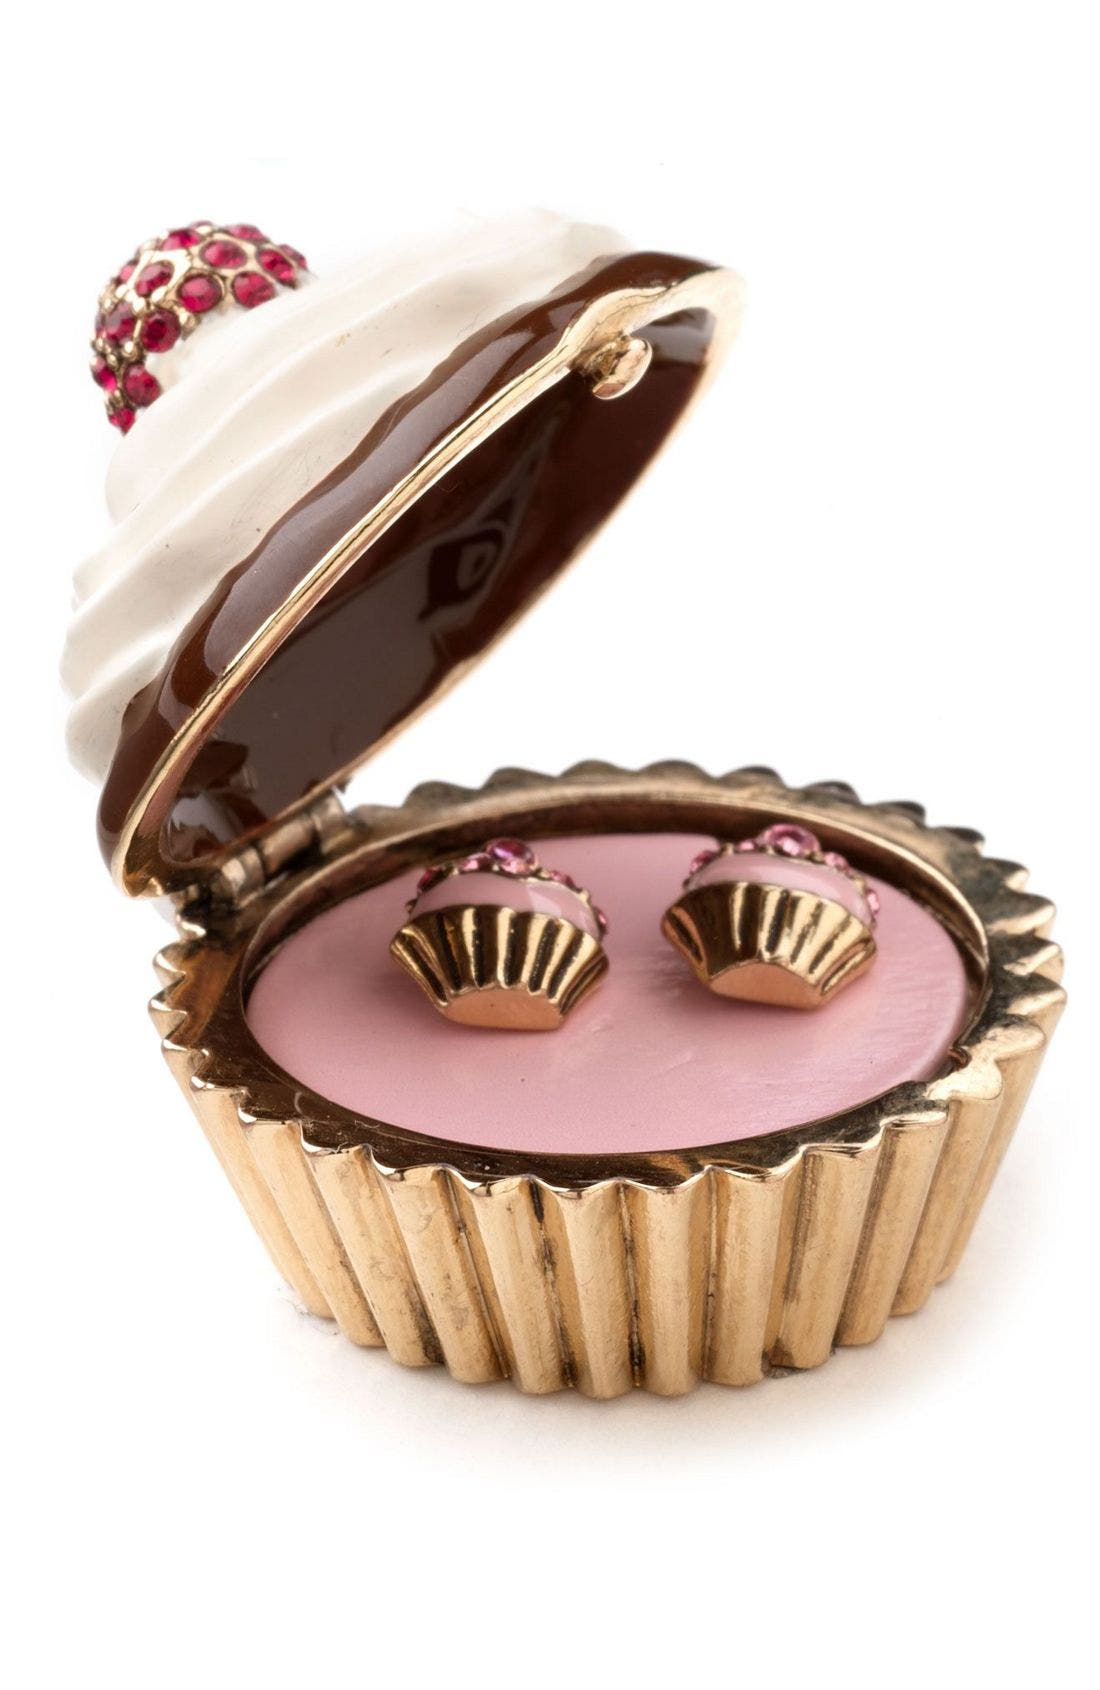 Alternate Image 1 Selected - Juicy Couture 'Puff' Earrings & Jewelry Box